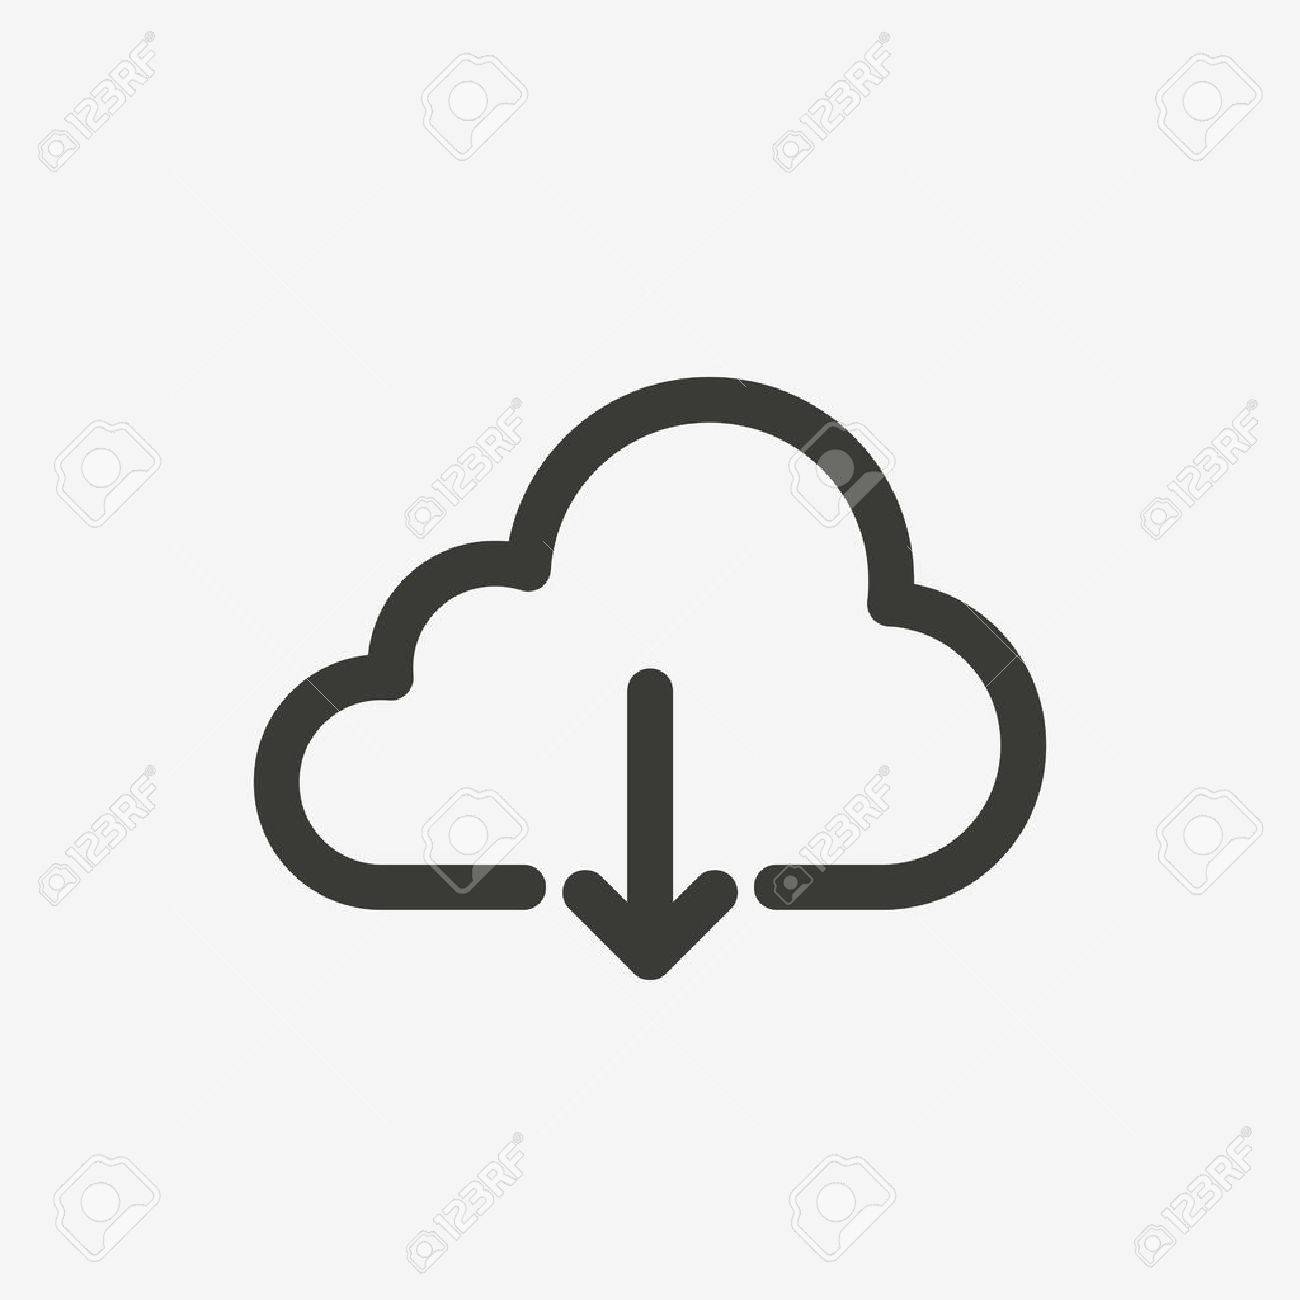 download cloud icon of brown outline for illustration - 60839309